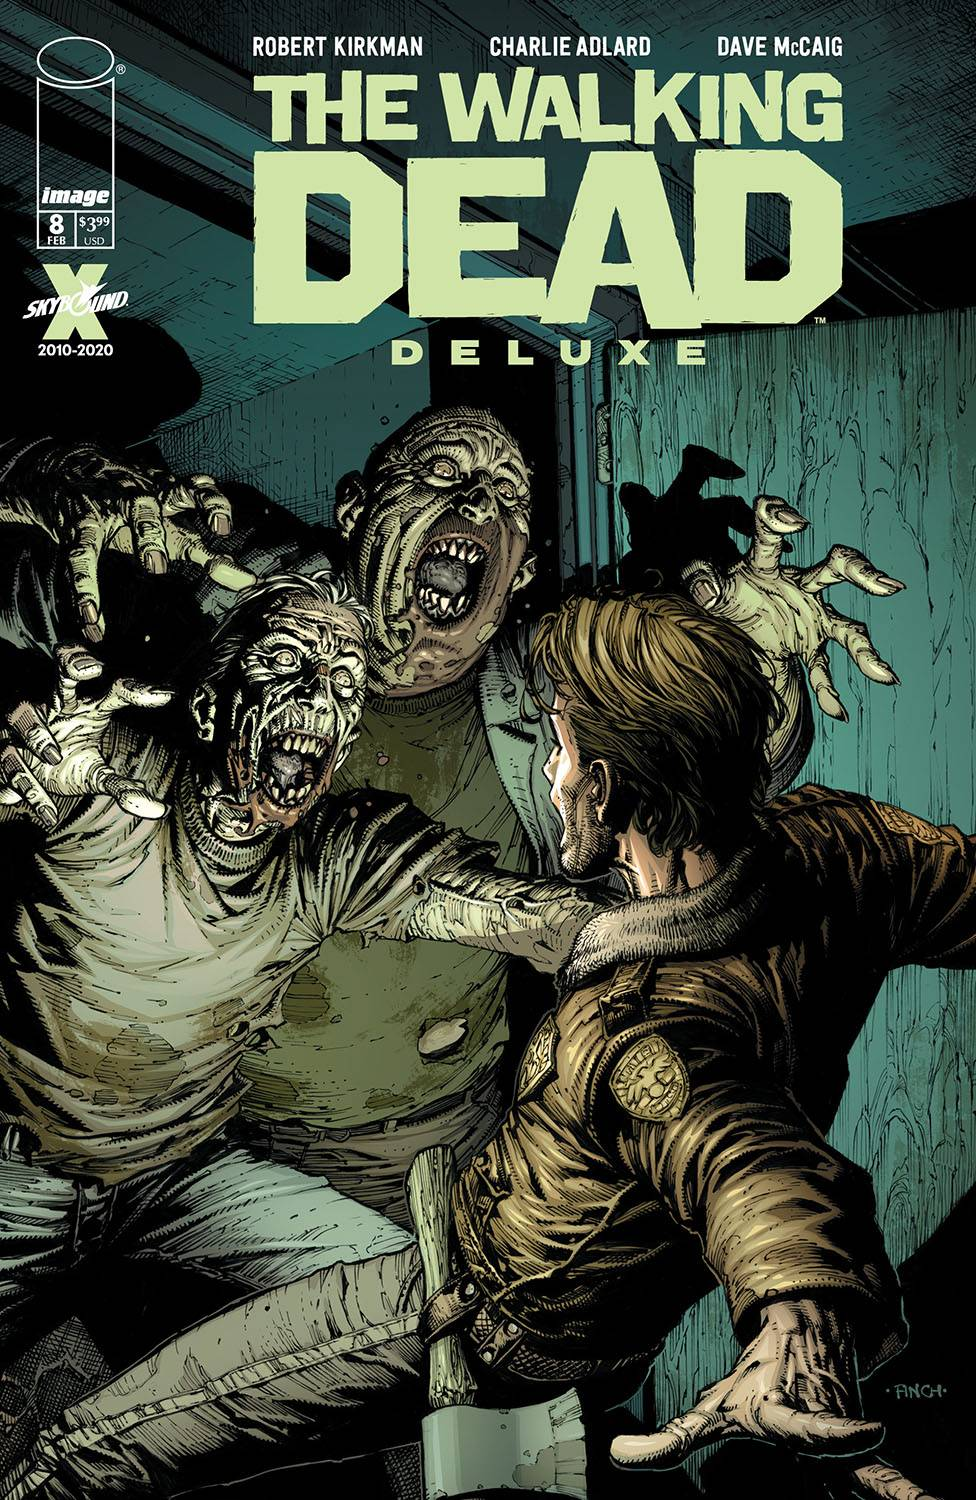 WALKING DEAD DLX #8 CVR A FINCH & MCCAIG (MR)